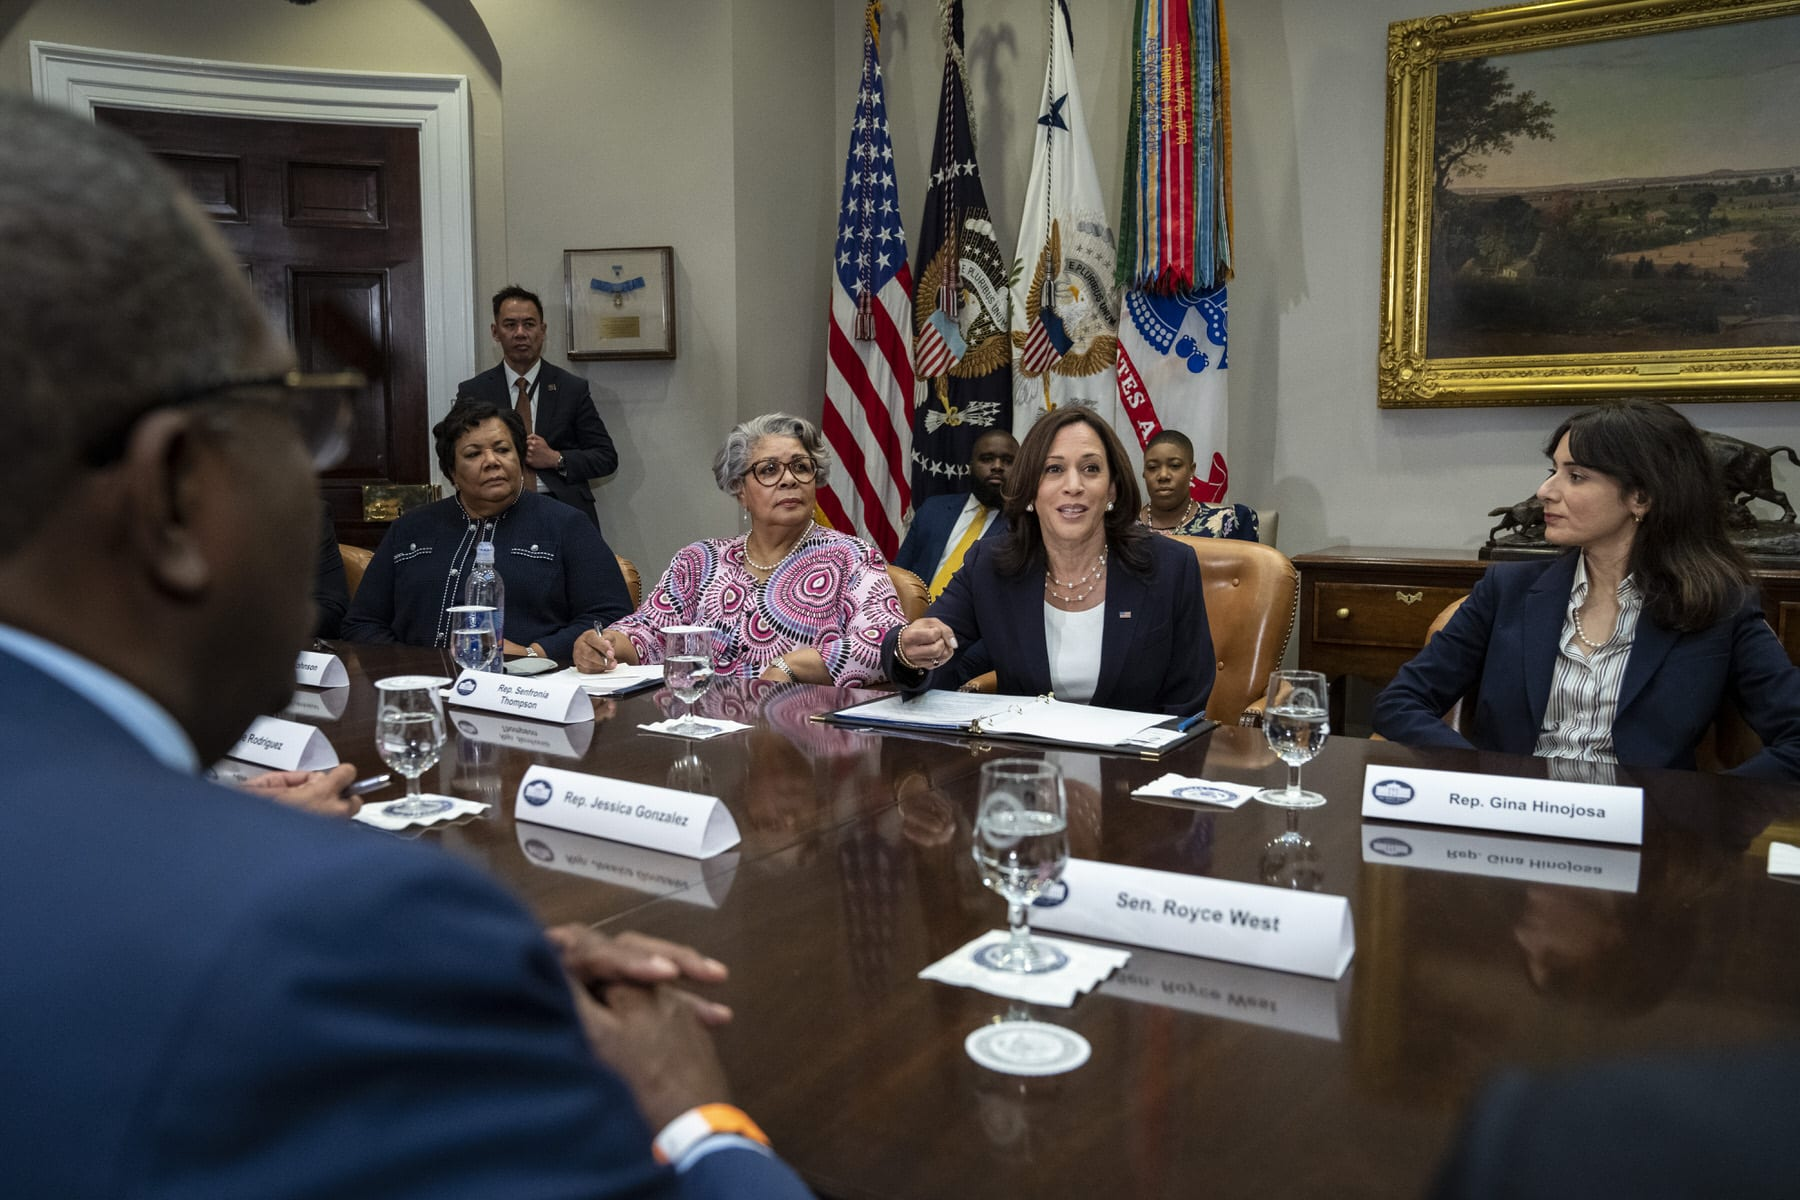 Vice President Kamala Harris speaks while meeting with Democratic members of the Texas Legislature in the Roosevelt Room of the White House.